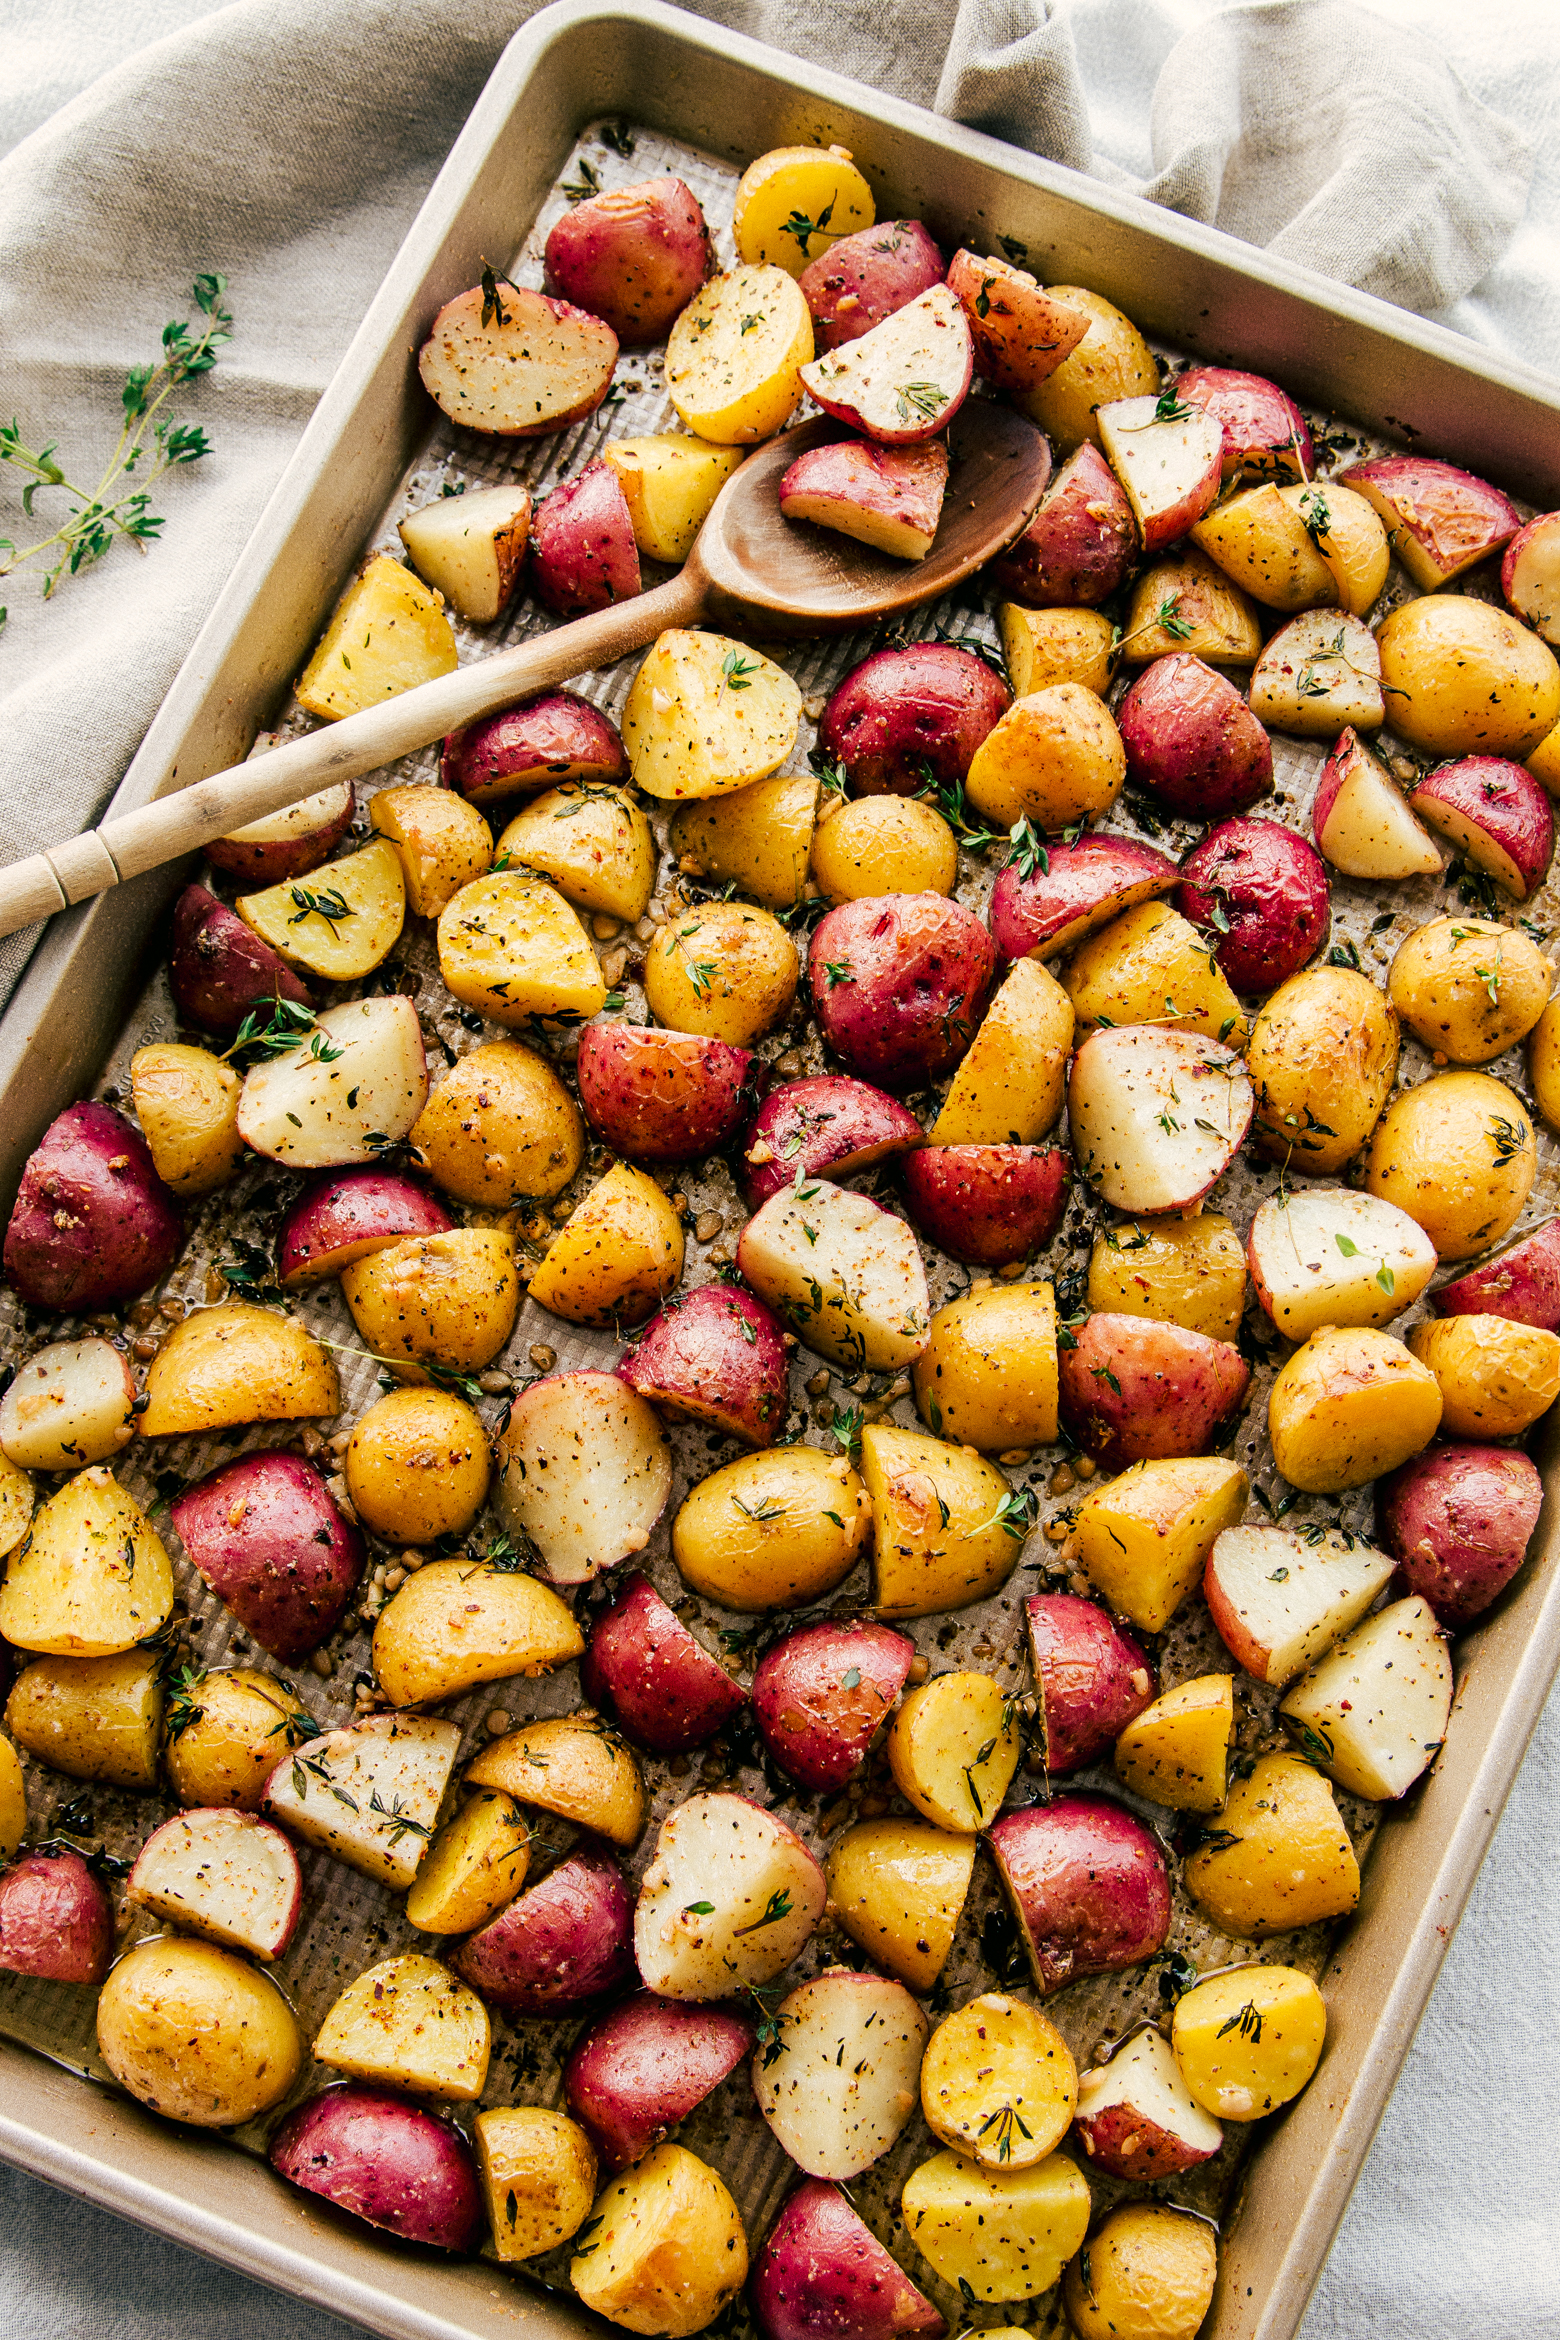 Garlic Butter Roasted Potatoes on a sheet pan with a wooden spoon for serving.